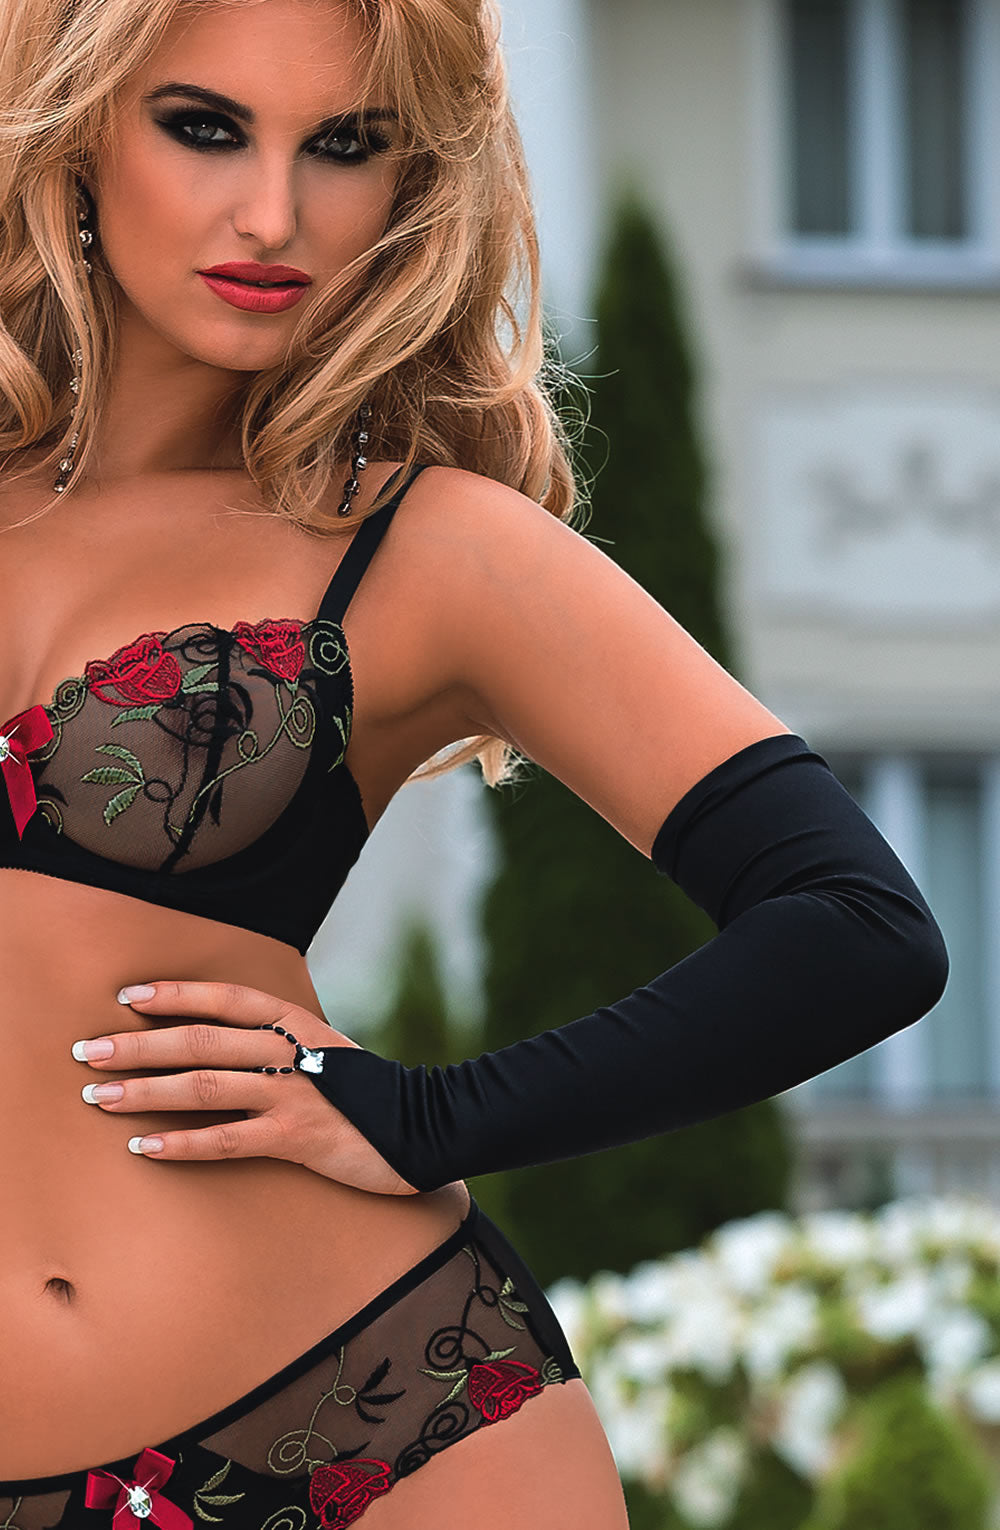 Roza Roza Rufina Gloves Black  Accessories, Bra Sets, Gloves, Honeymoon, Lingerie Sets, NEWLY-IMPORTED, Our TOP Valentine's Gifts!, Roza, Valentine, Valentines - So Luxe Lingerie